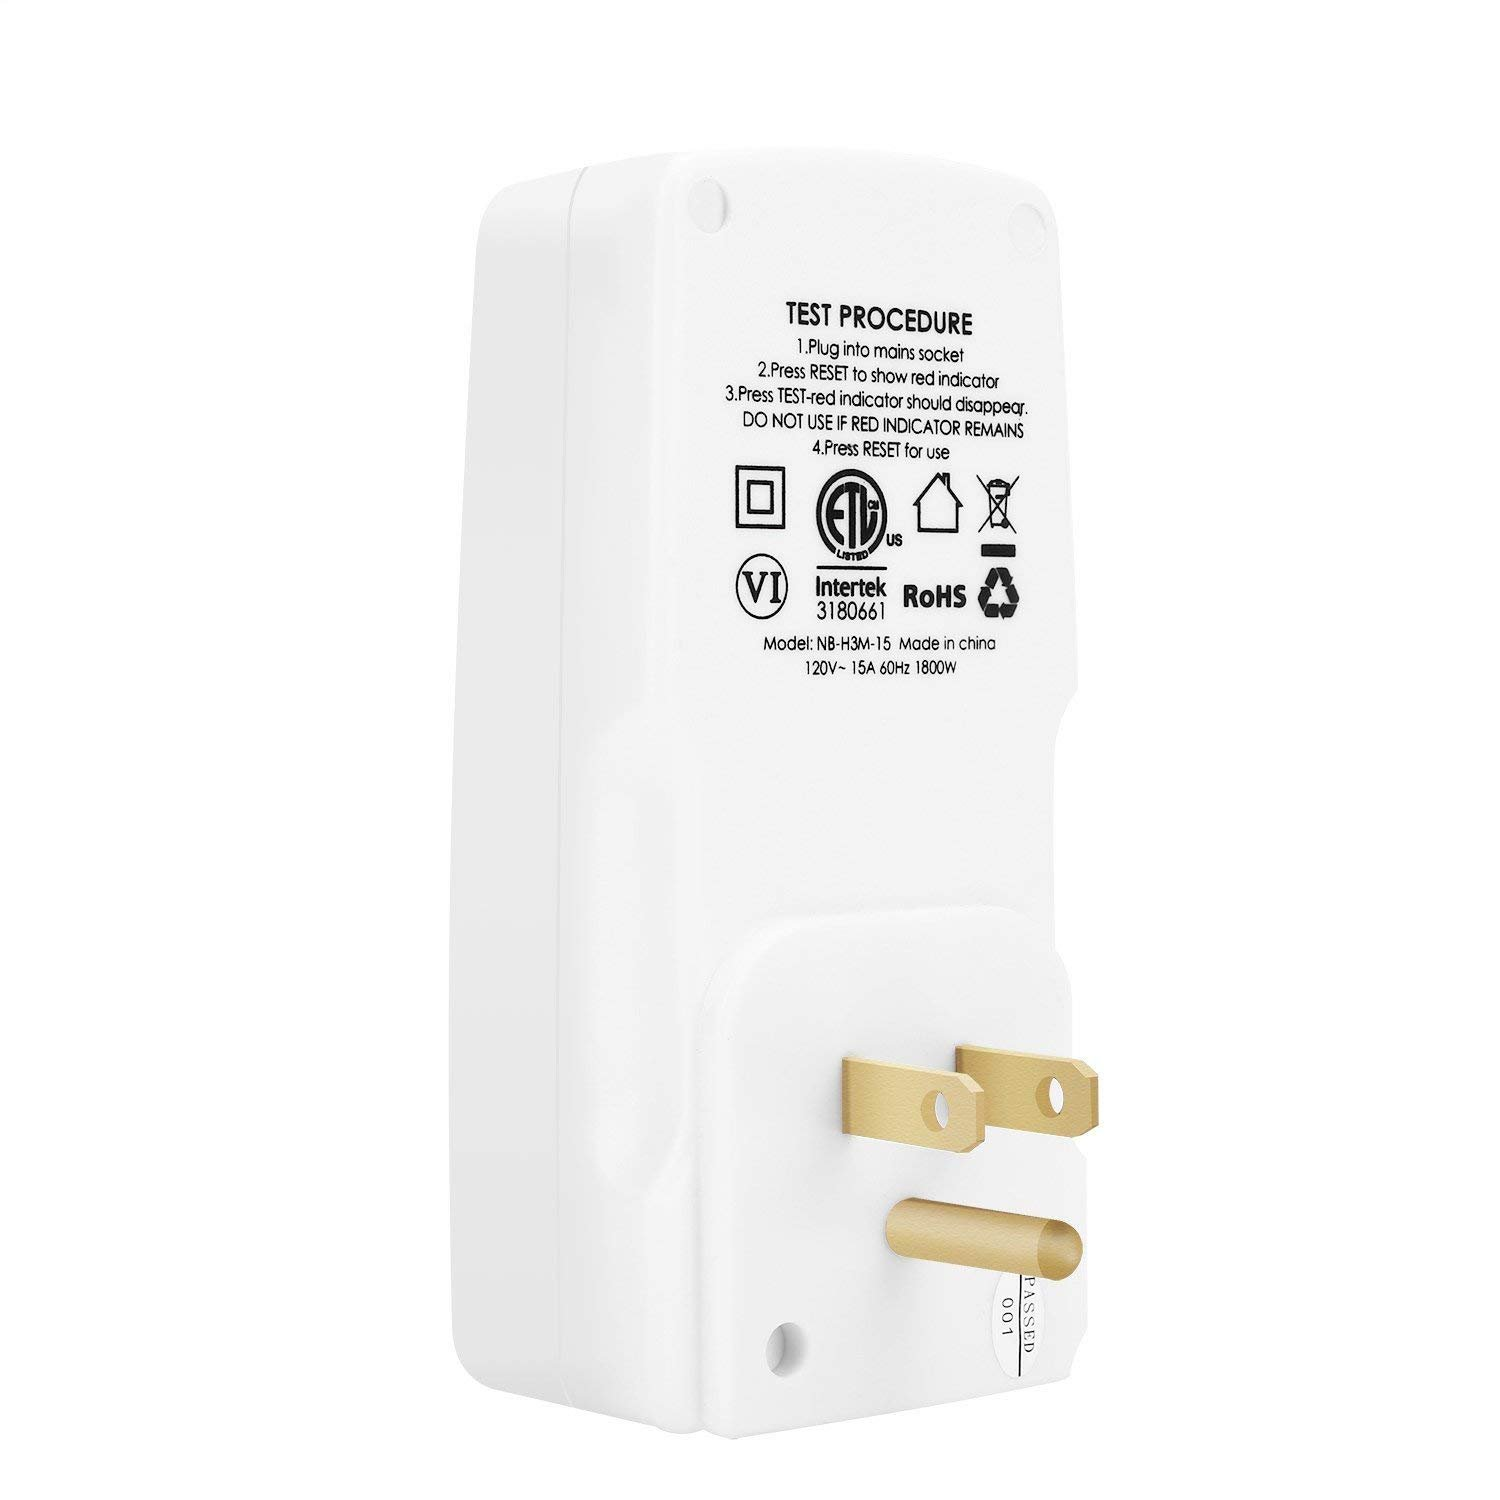 Aneken Gfci Outlet Rcd Adapter Portable Leakage Protection Breaker Ground Fault Circuit Interrupter W Two 15 A 15amp In For Household Devices To Protect Electric Safety